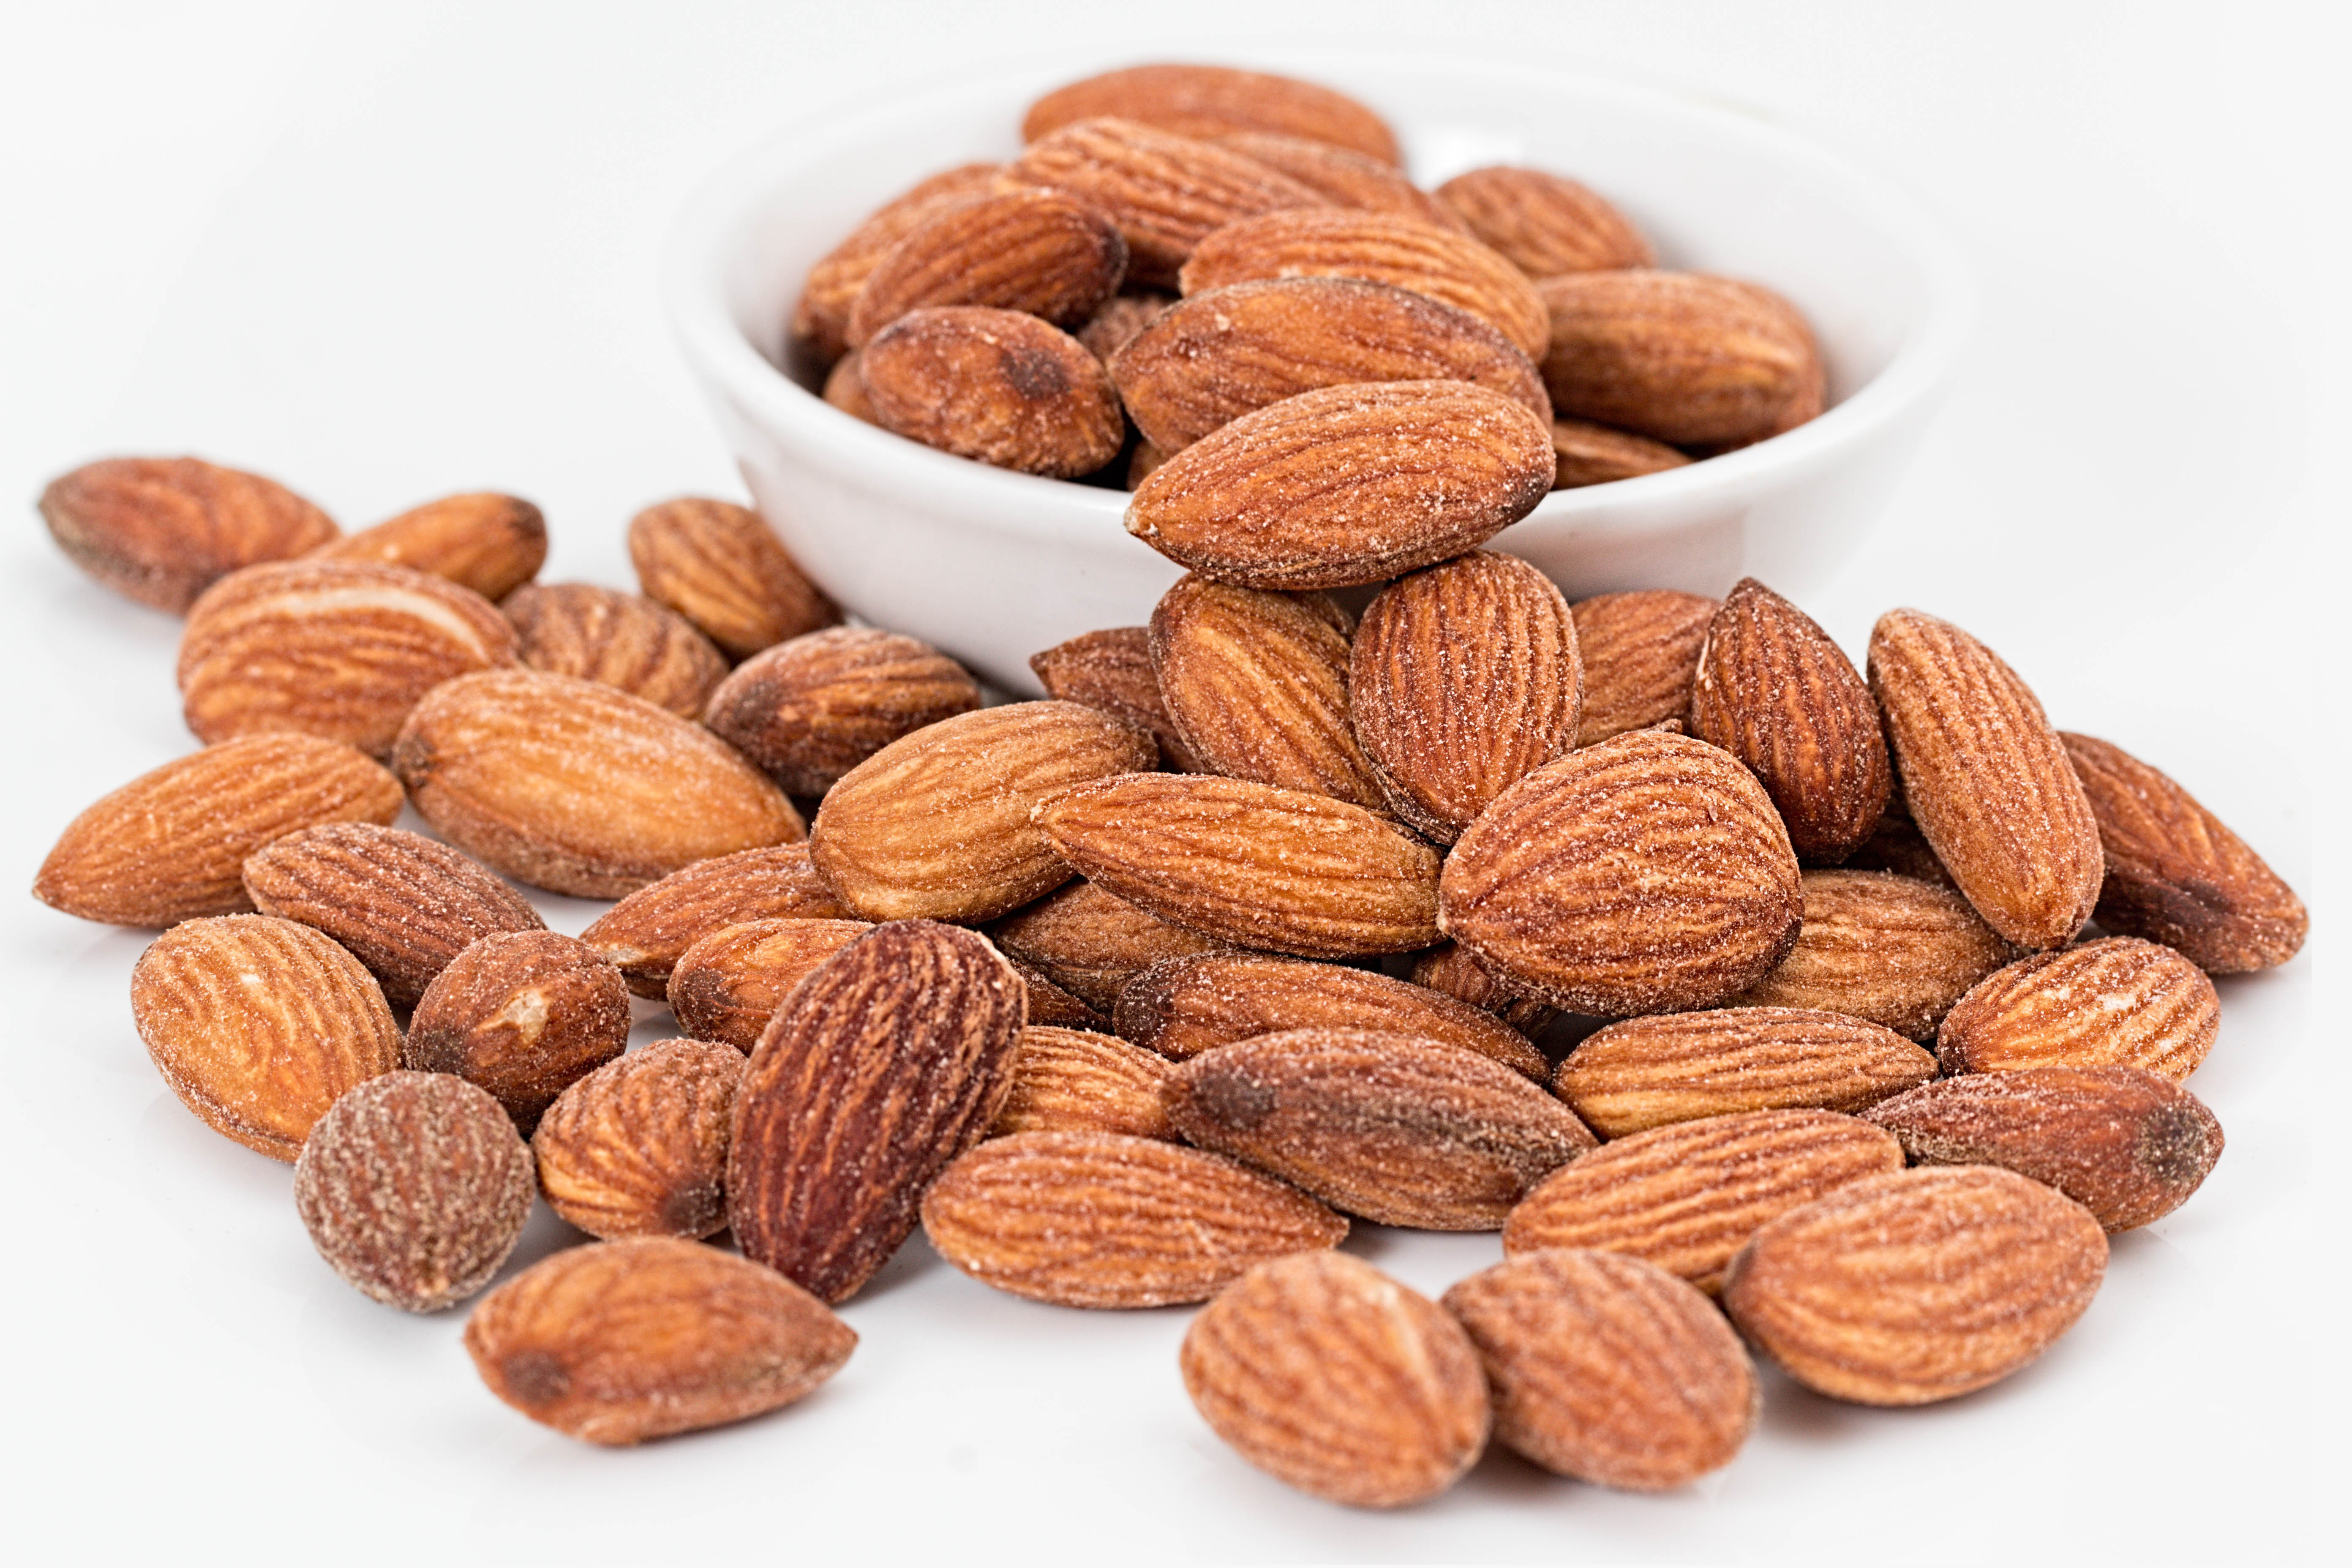 almonds,nuts,food,snack